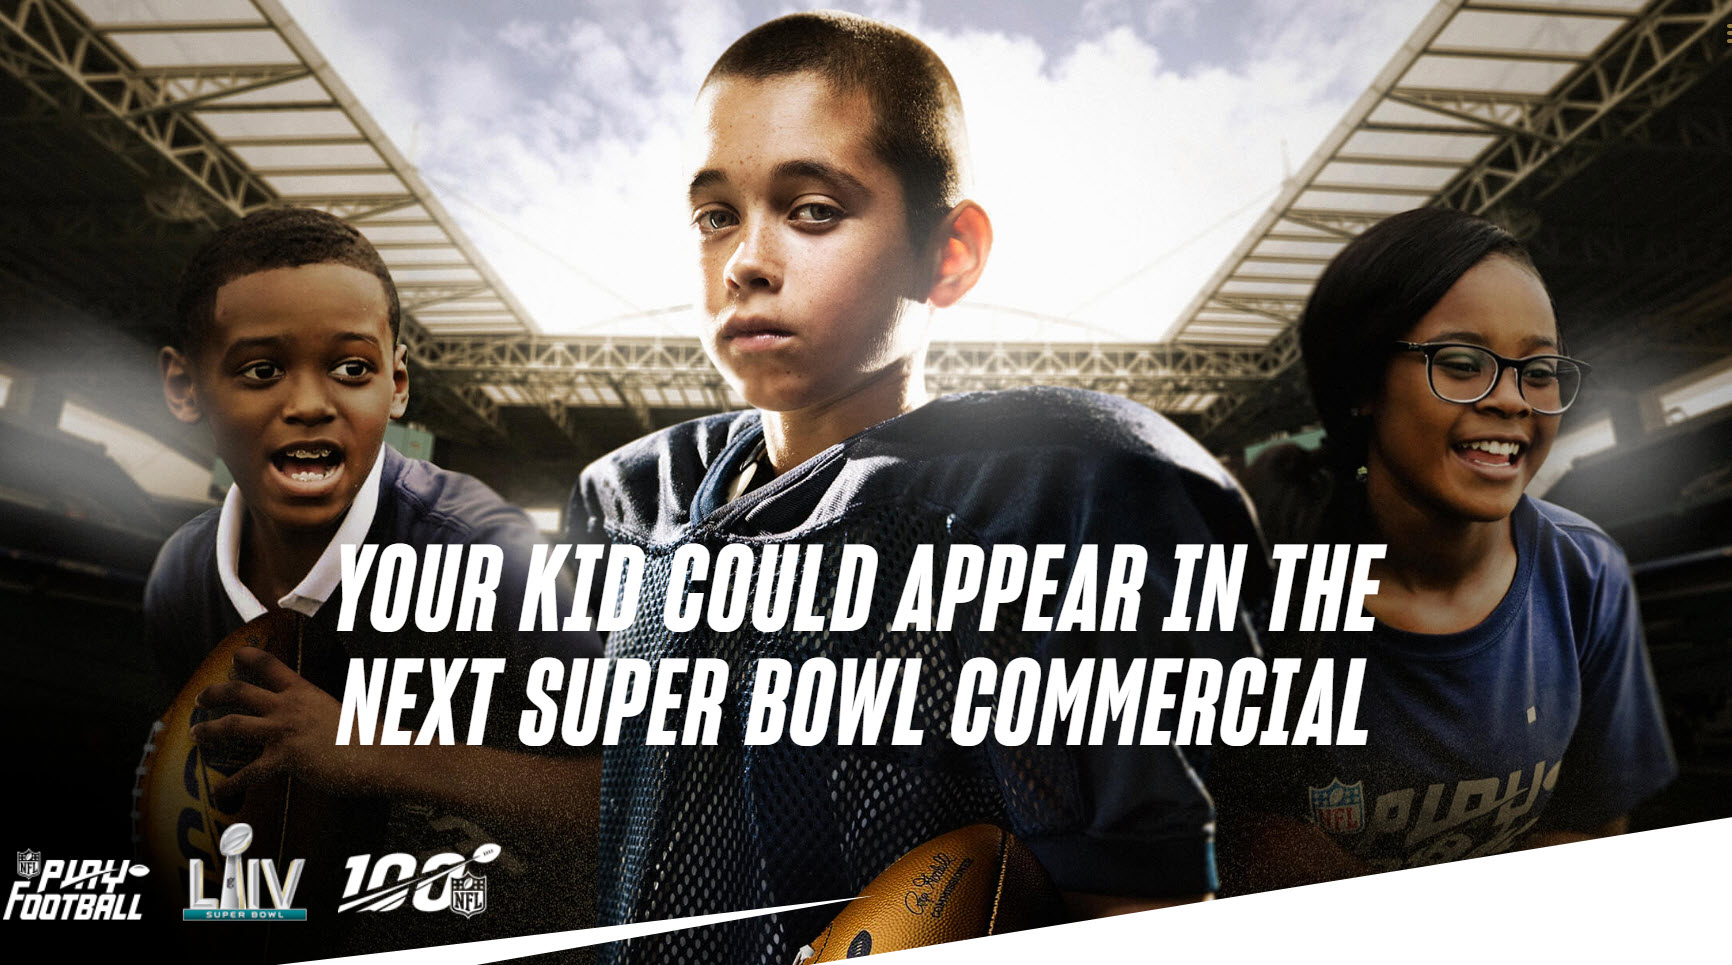 32 TRIP WINNERS! Enter your child for your chance to win a trip for 2 to attend Super Bowl LIV this February in Miami, Florida. Enter and your kid could appear in the next Super Bowl commercial.